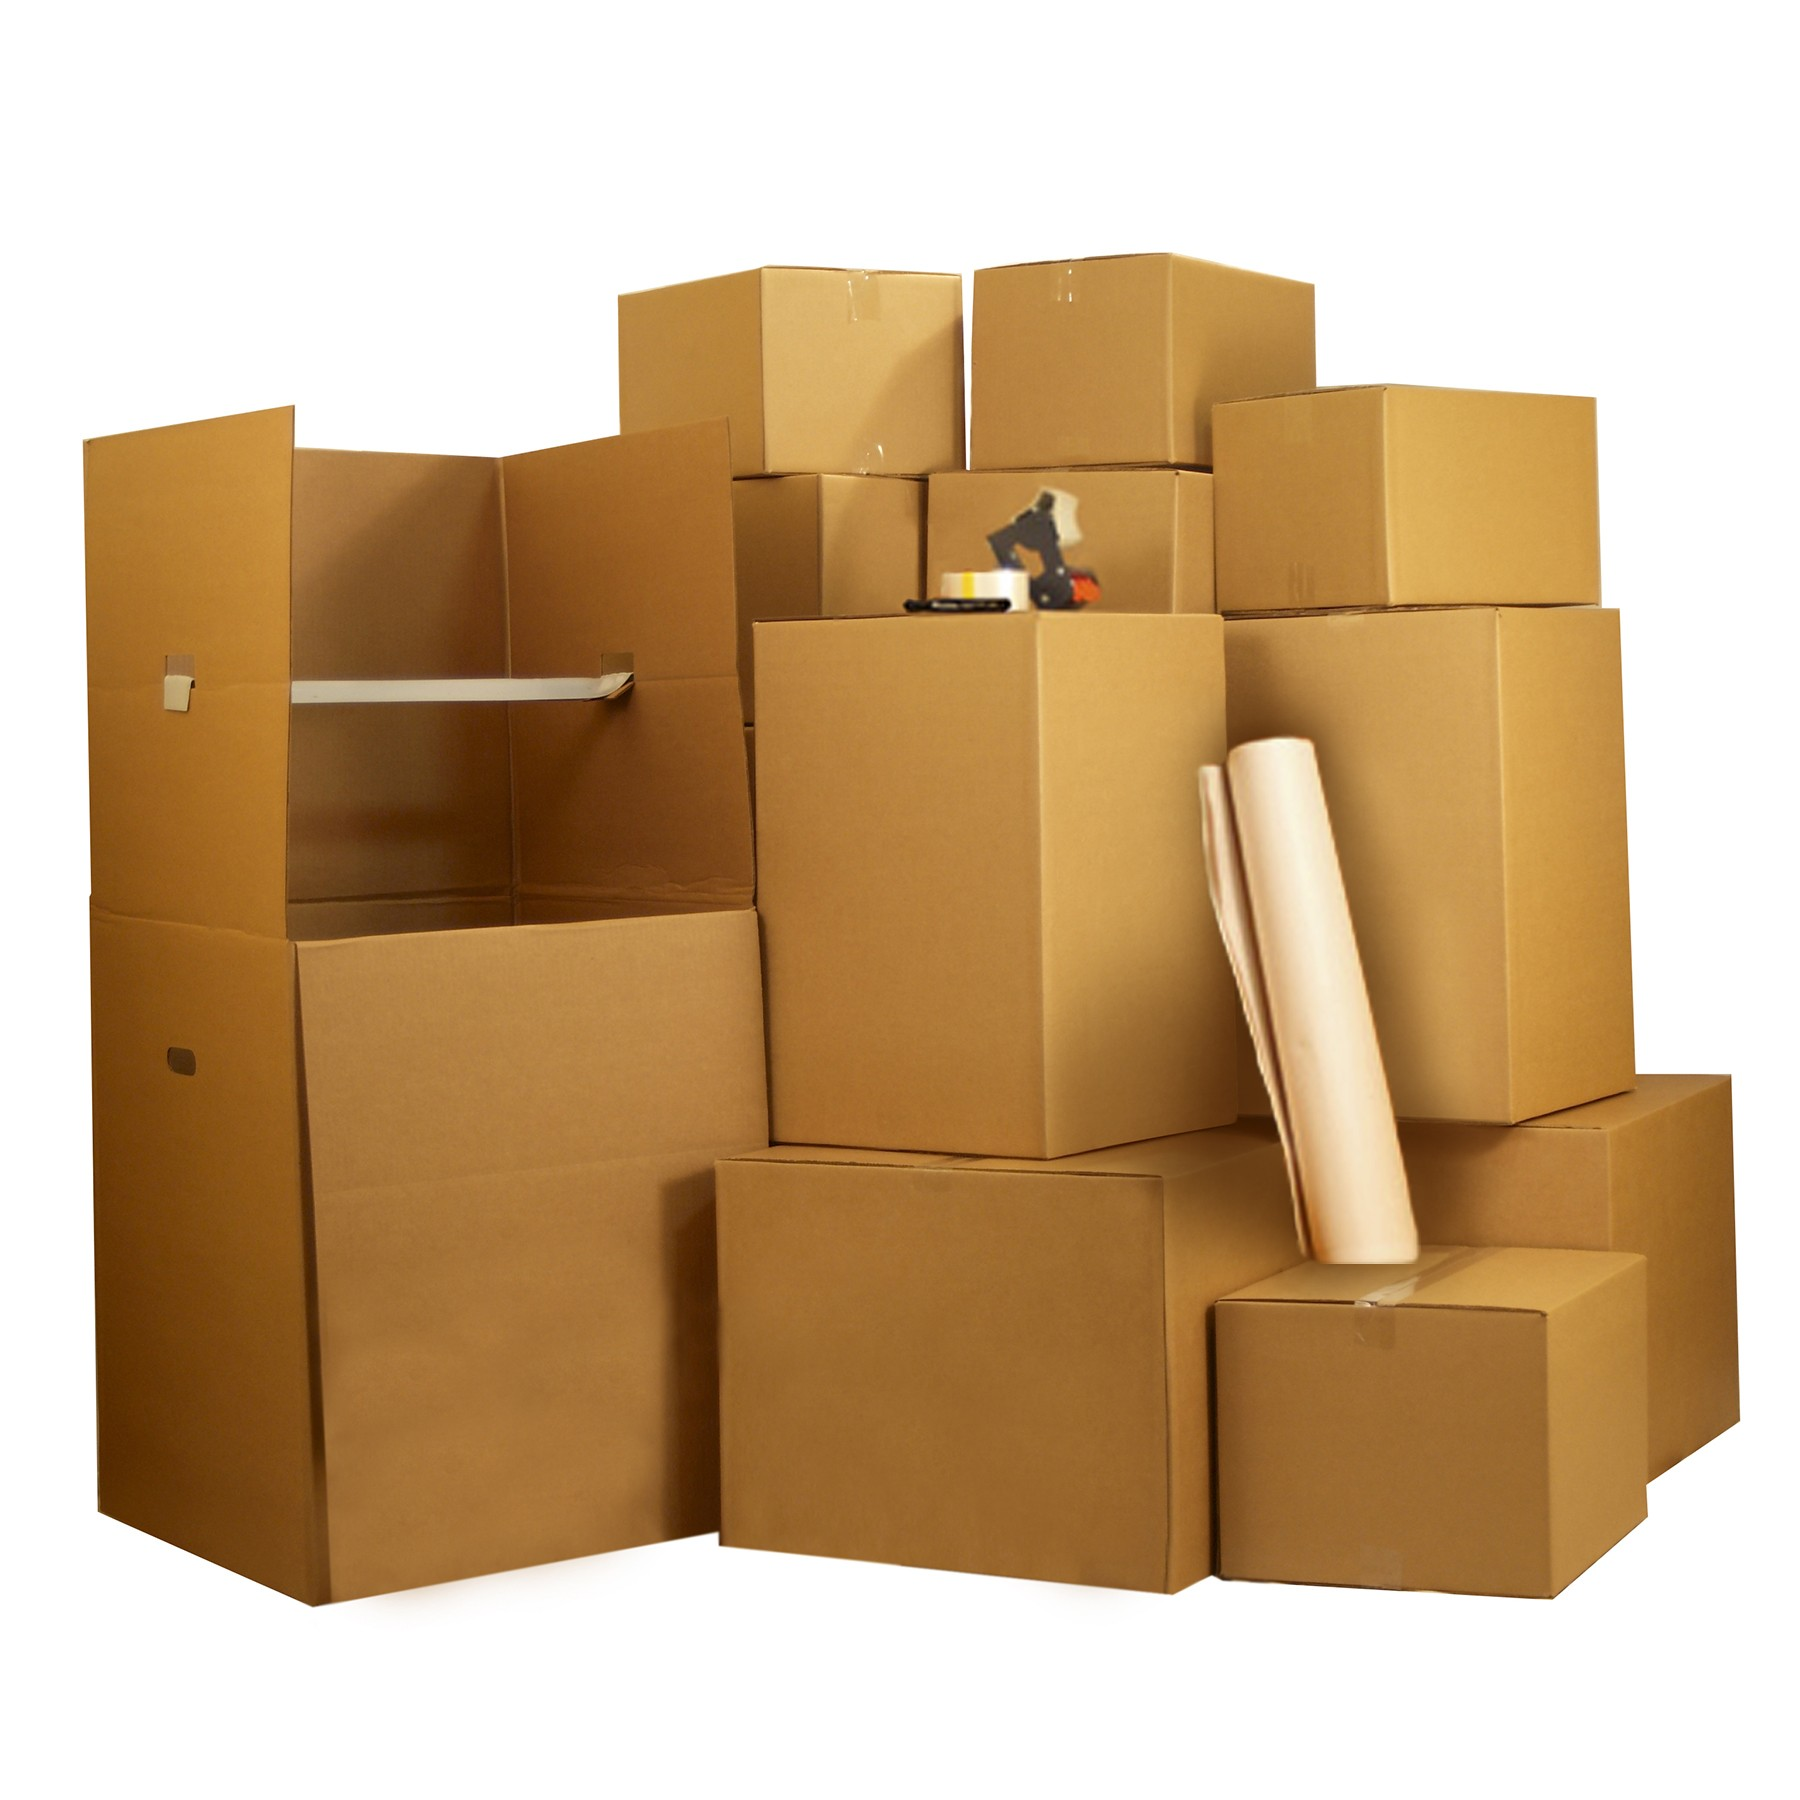 Uboxes 3 Room Wardrobe Kit, 33 Boxes, Bubble Roll, Moving Supplies